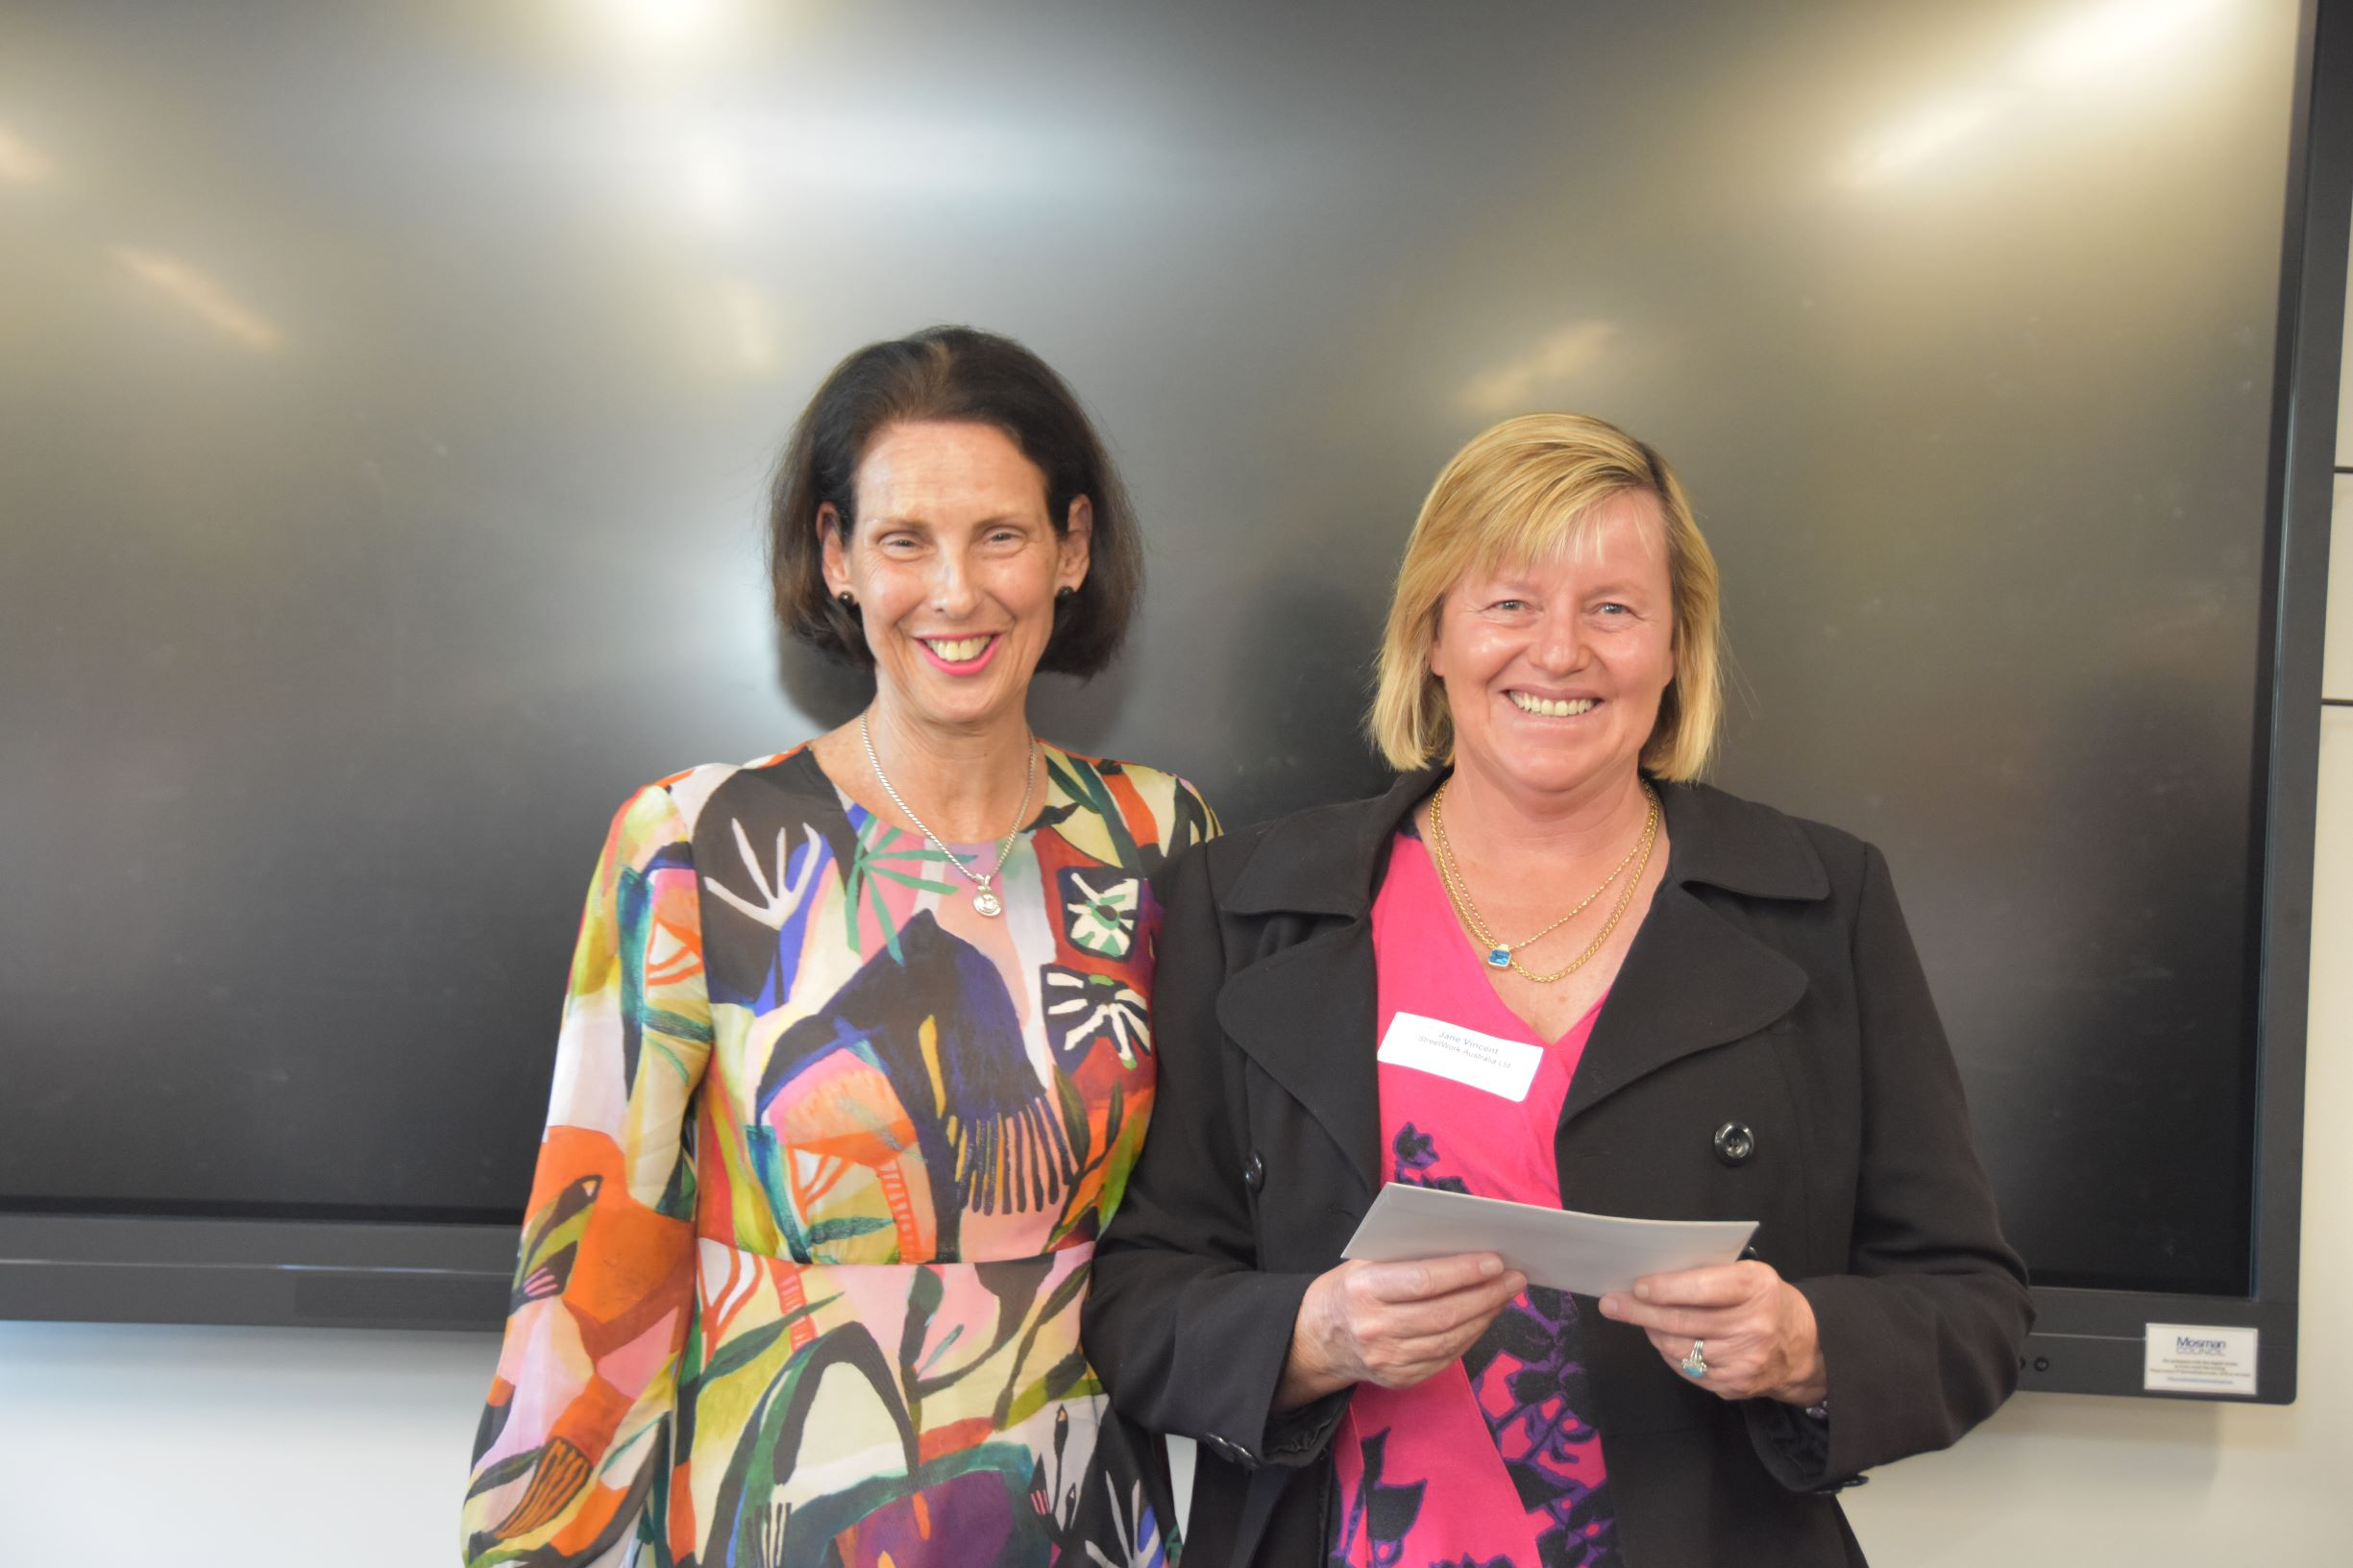 Mosman council cheque presentation August 2019 v1.JPG